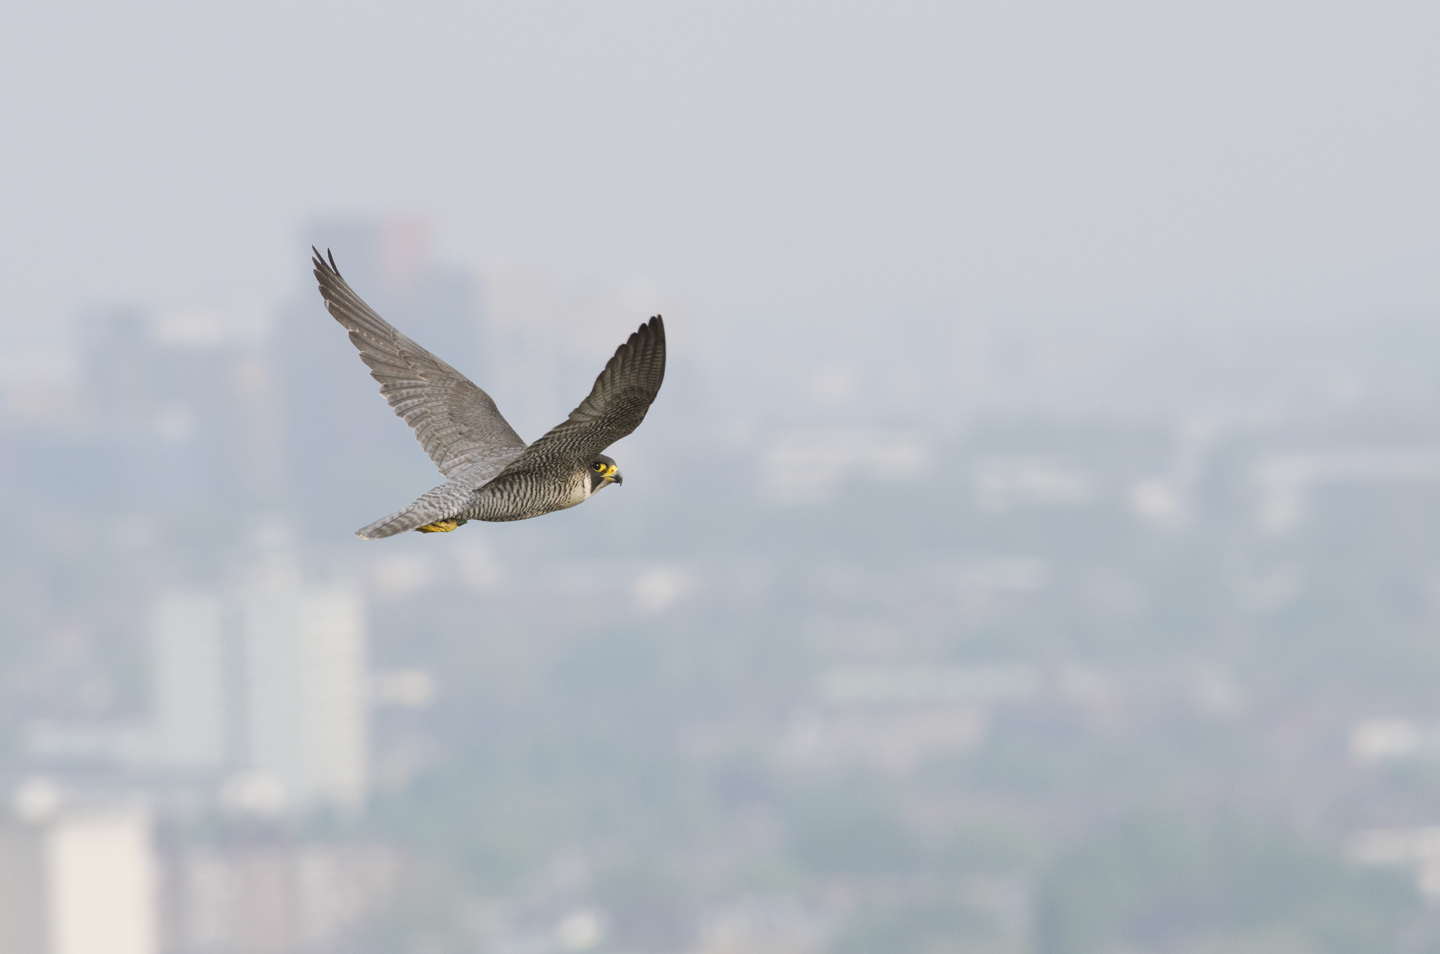 Peregrines are not entirely free from persecution in cities andpigeon fanciers can occasionally be a problem, but they are comparatively safeand anincrease in numbers has meant an increase in understanding